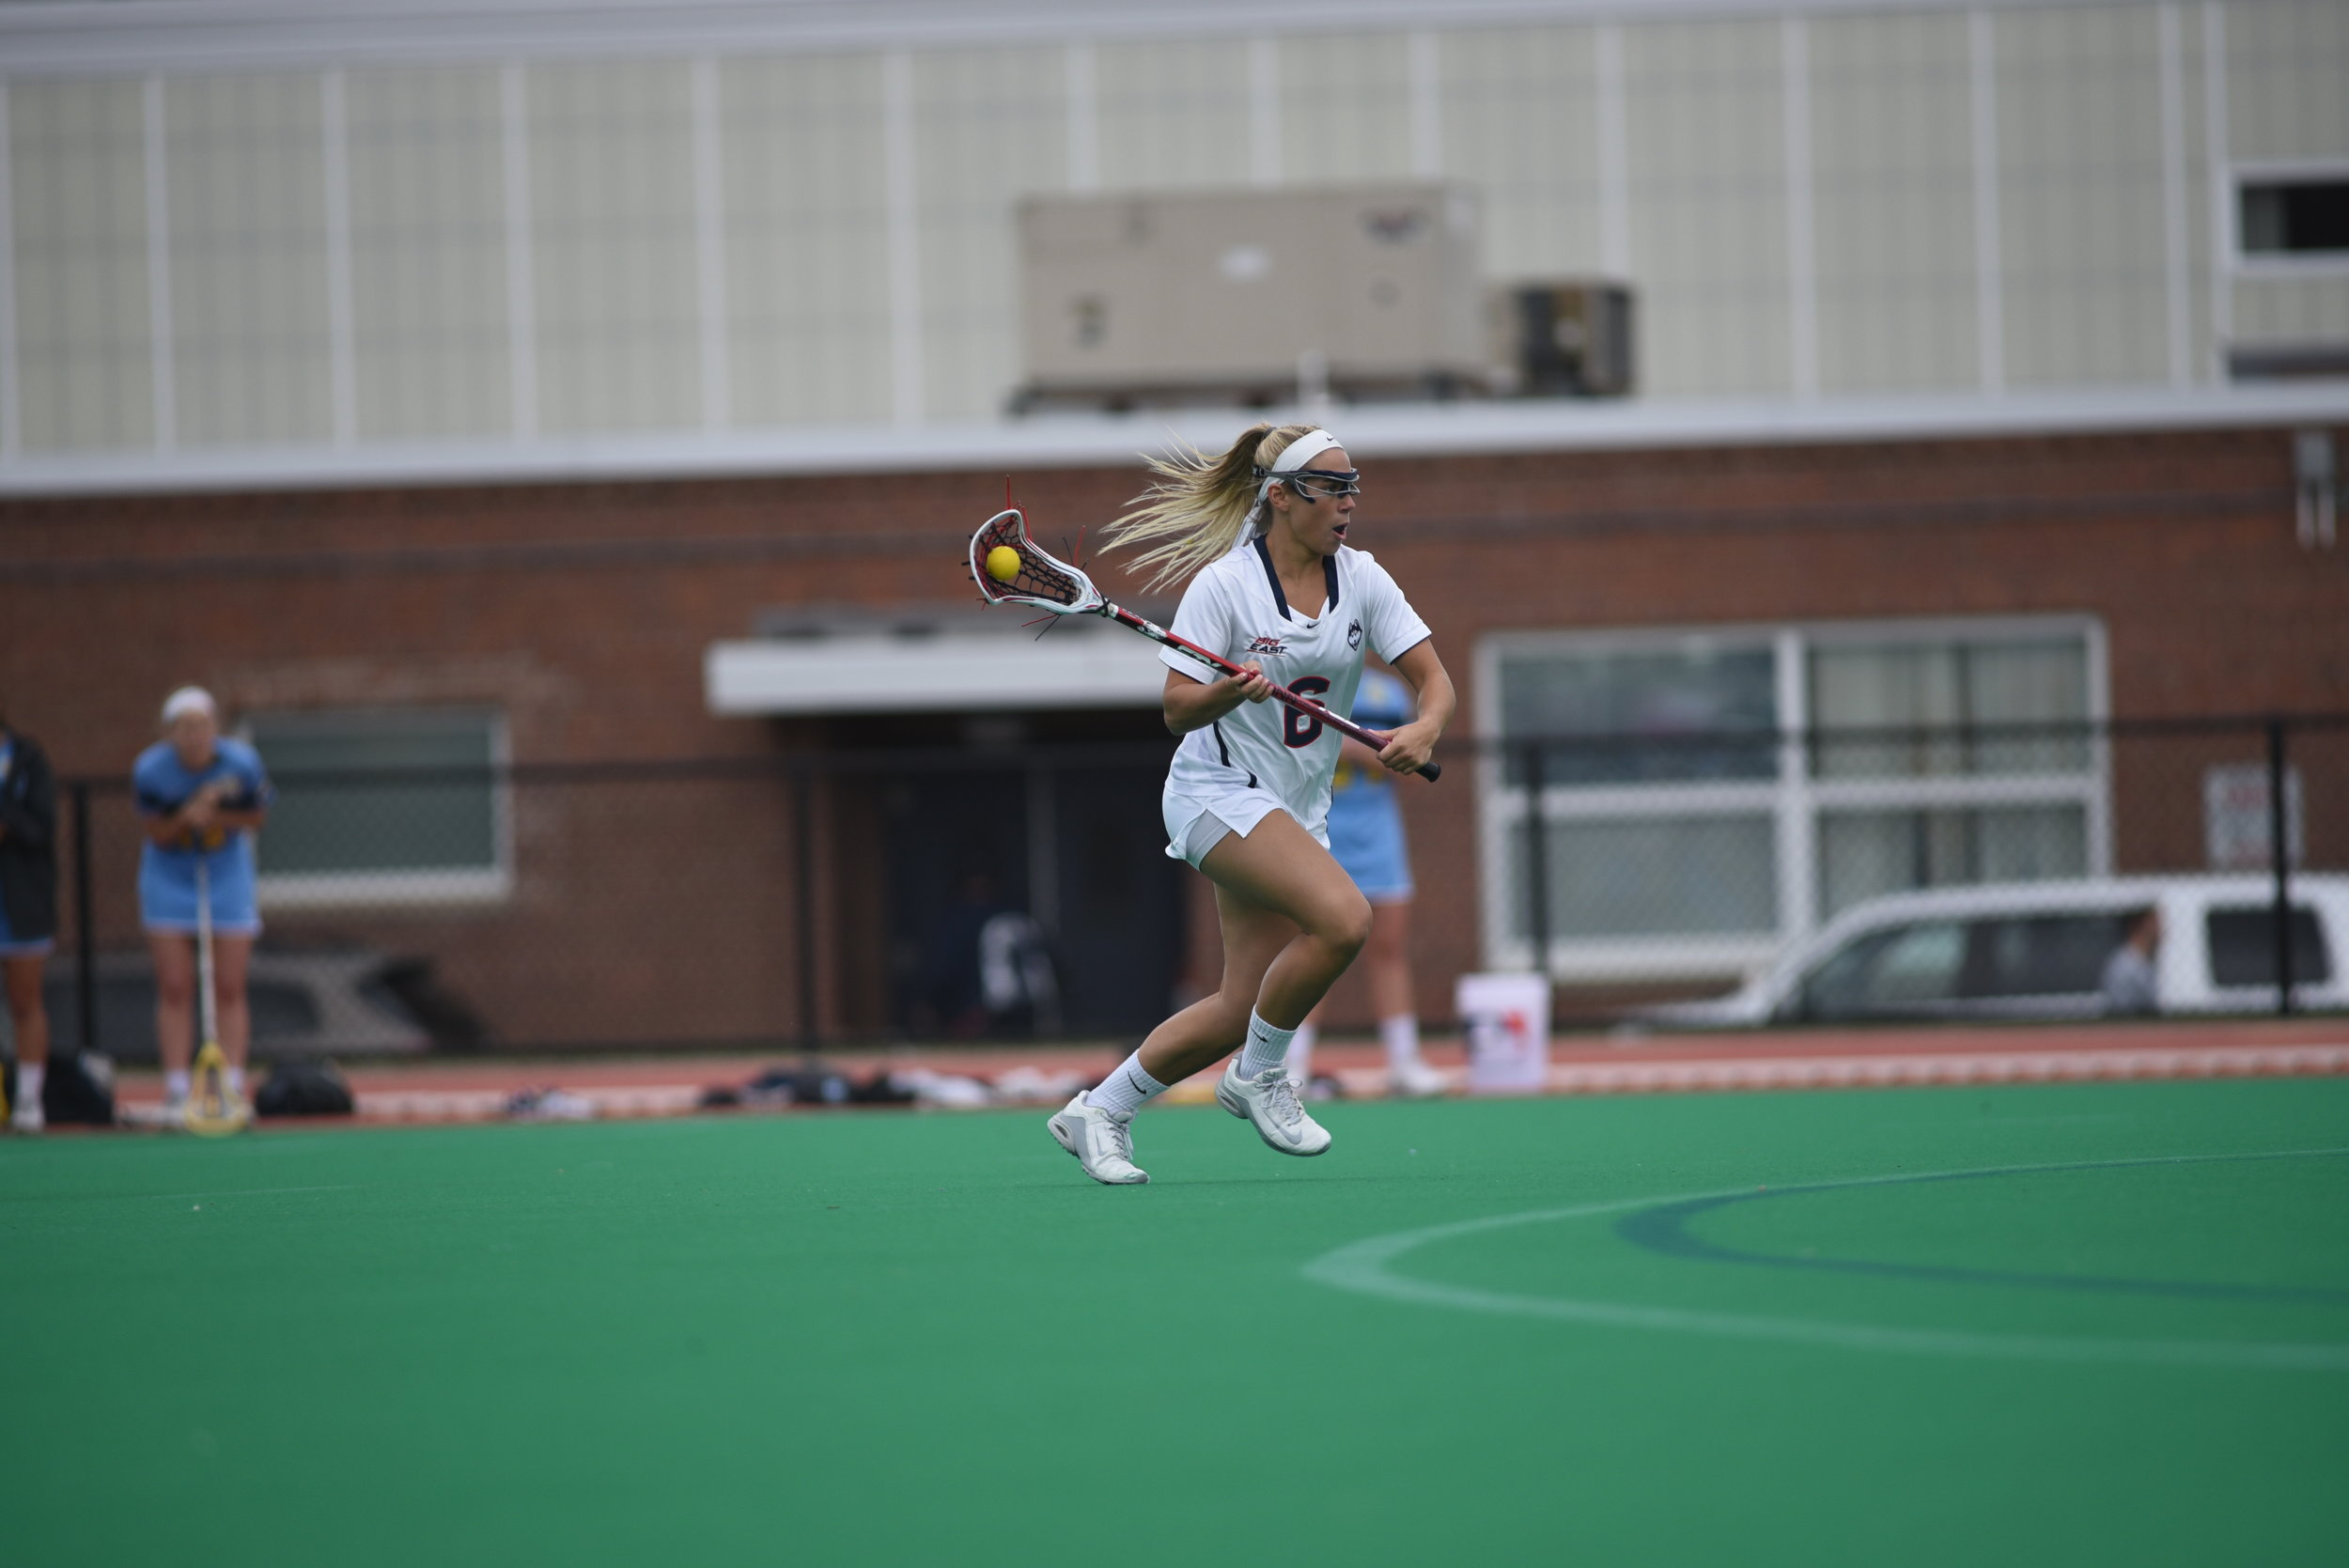 The Huskies will be playing Syracuse, who was ranked seventh in the IWCLA poll released Jan. 29. The Orange were also picked to finish second in the ACC behind North Carolina. (Charlotte Lao/The Daily Campus)